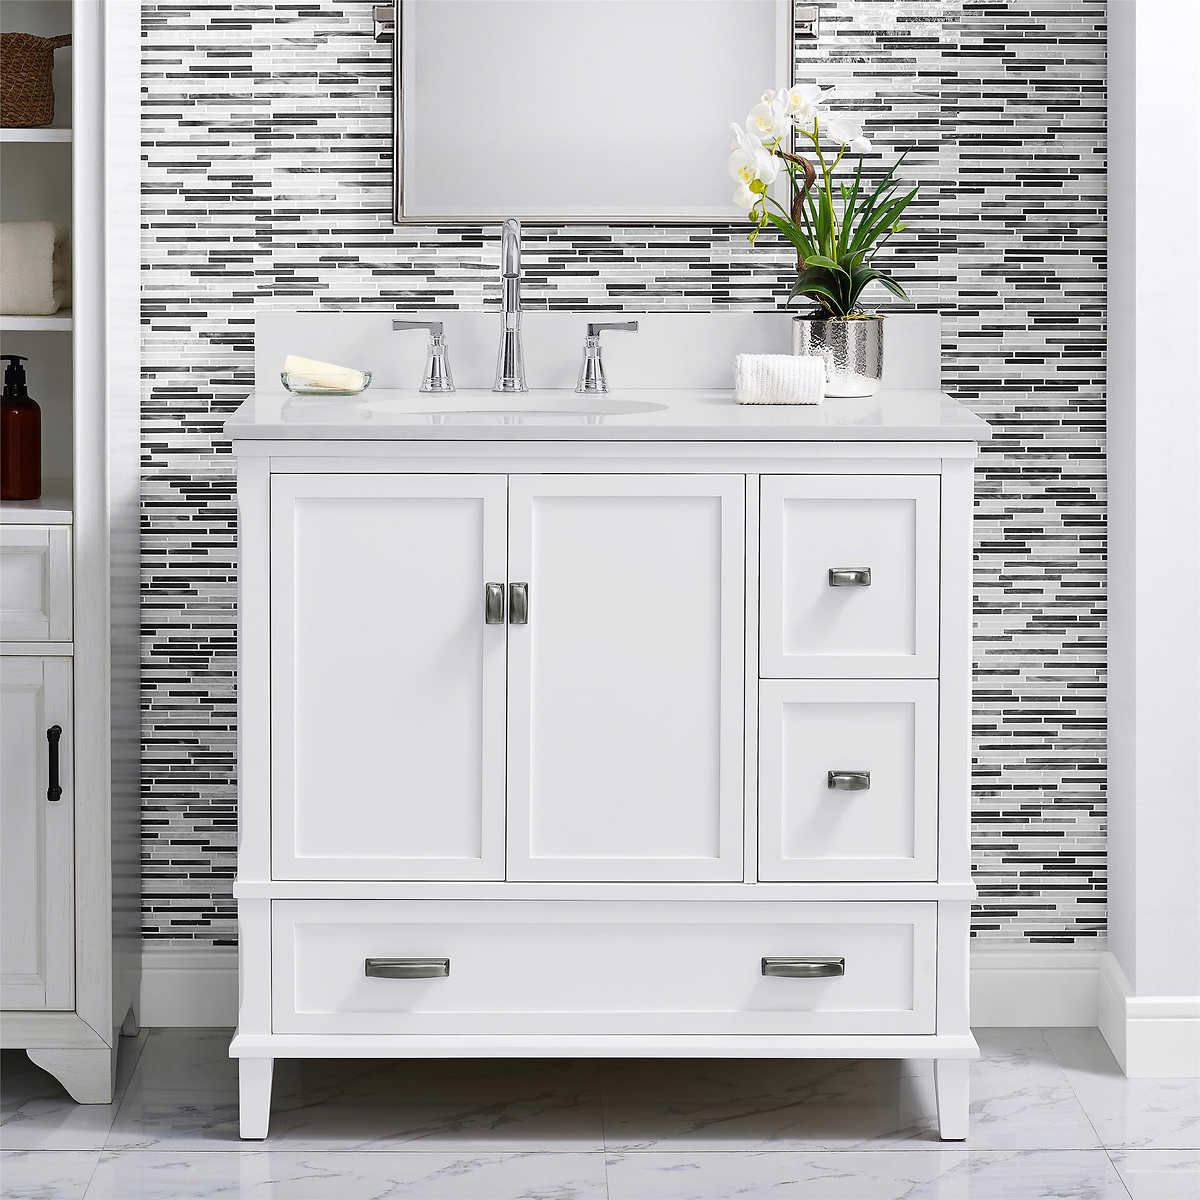 Dorel Home Canada Otum 36 In Bathroom Vanity Single Bathroom Vanity 36 Inch Bathroom Vanity 36 Bathroom Vanity